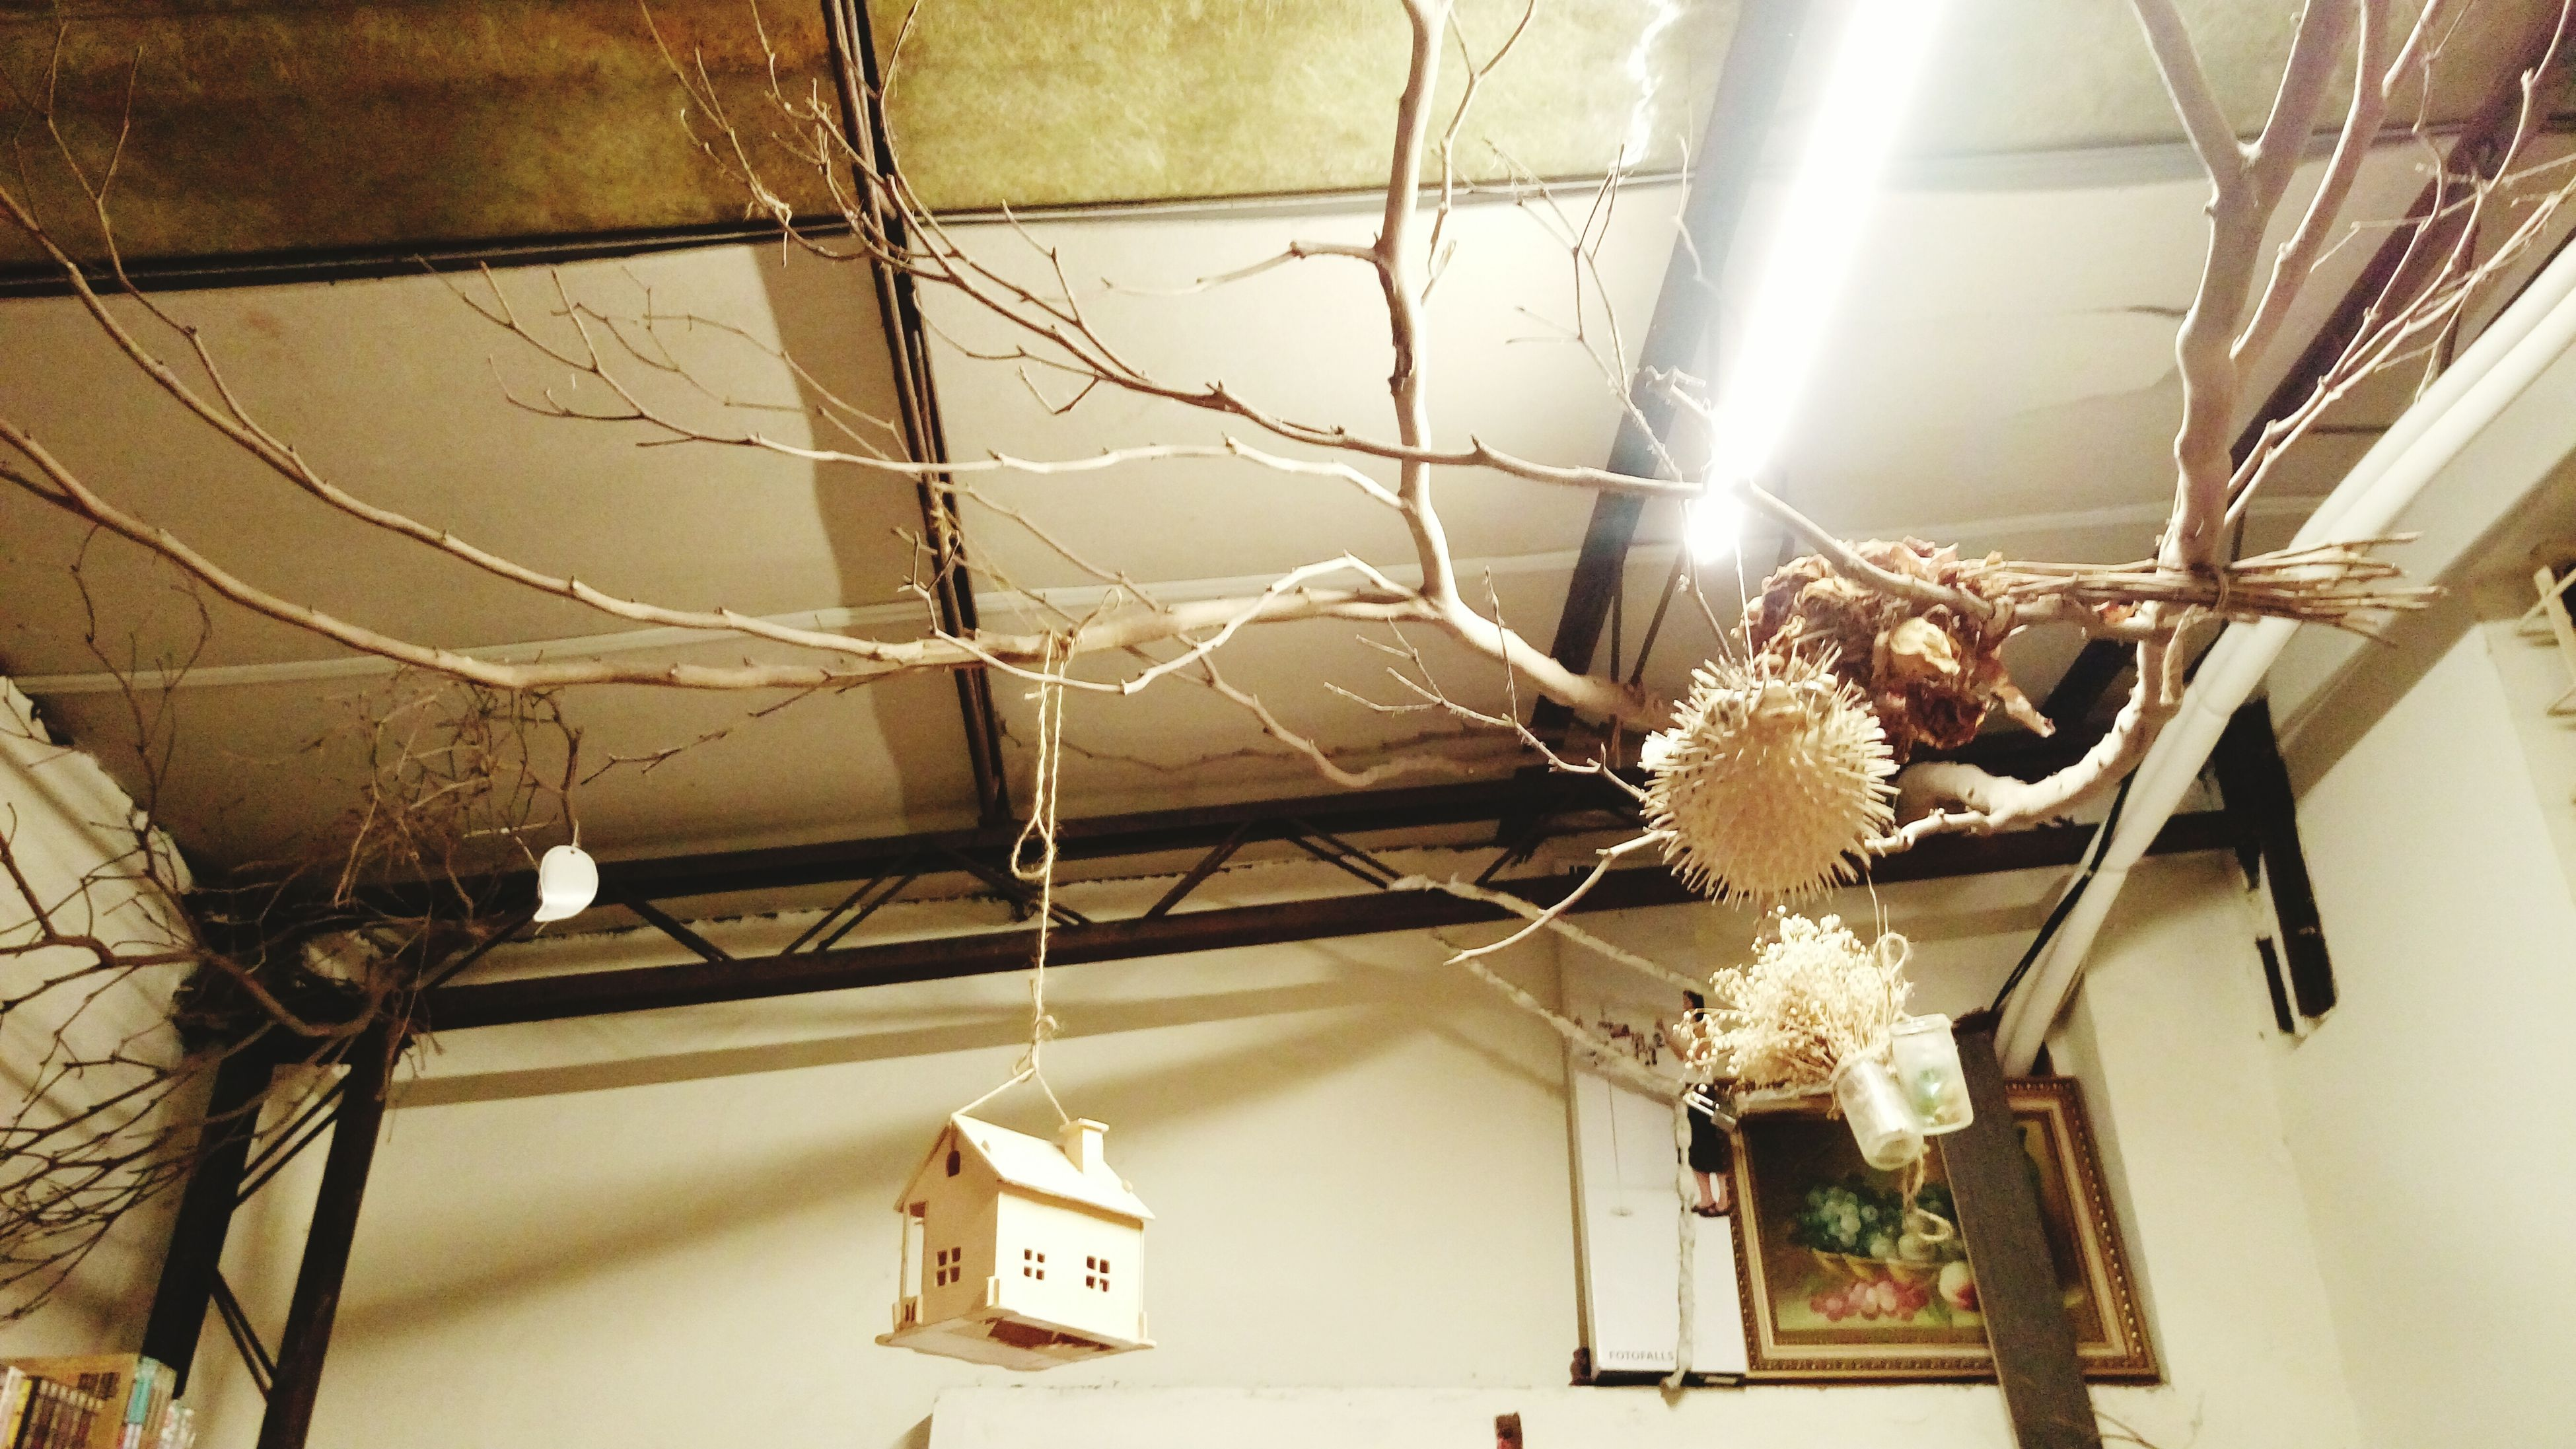 hanging, low angle view, lighting equipment, built structure, architecture, indoors, electricity, decoration, ceiling, house, electric lamp, illuminated, building exterior, flower, home interior, window, no people, wall - building feature, chandelier, day